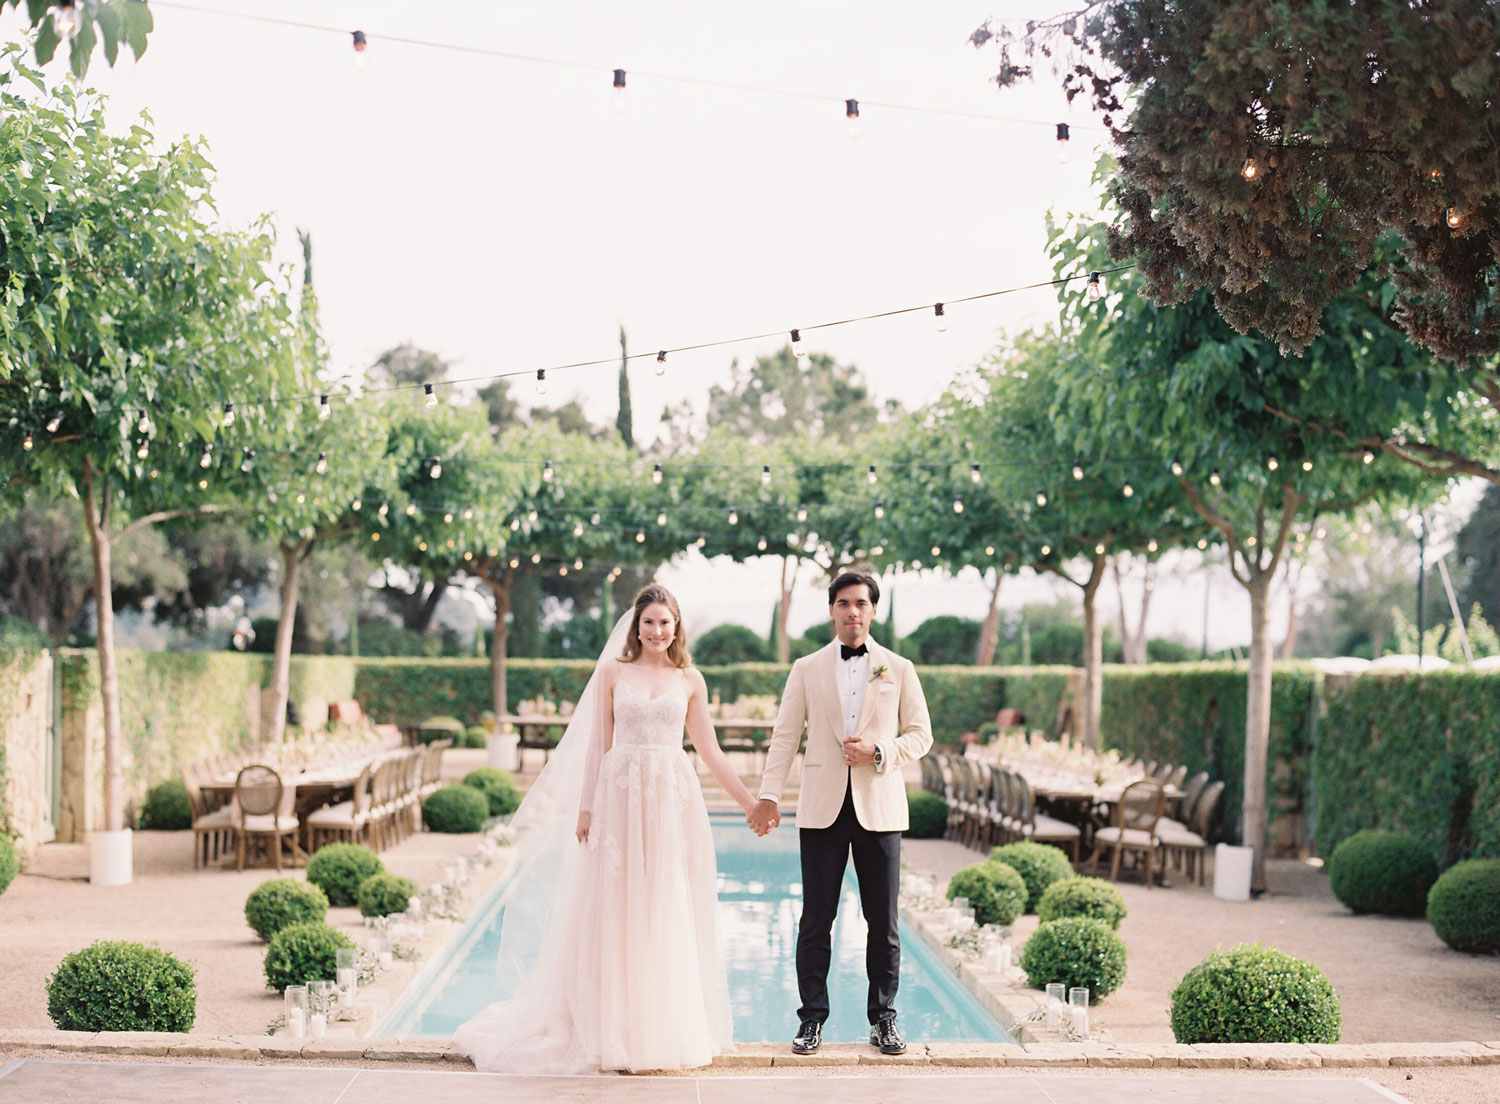 Bride and groom portrait by reflection pool wedding in california